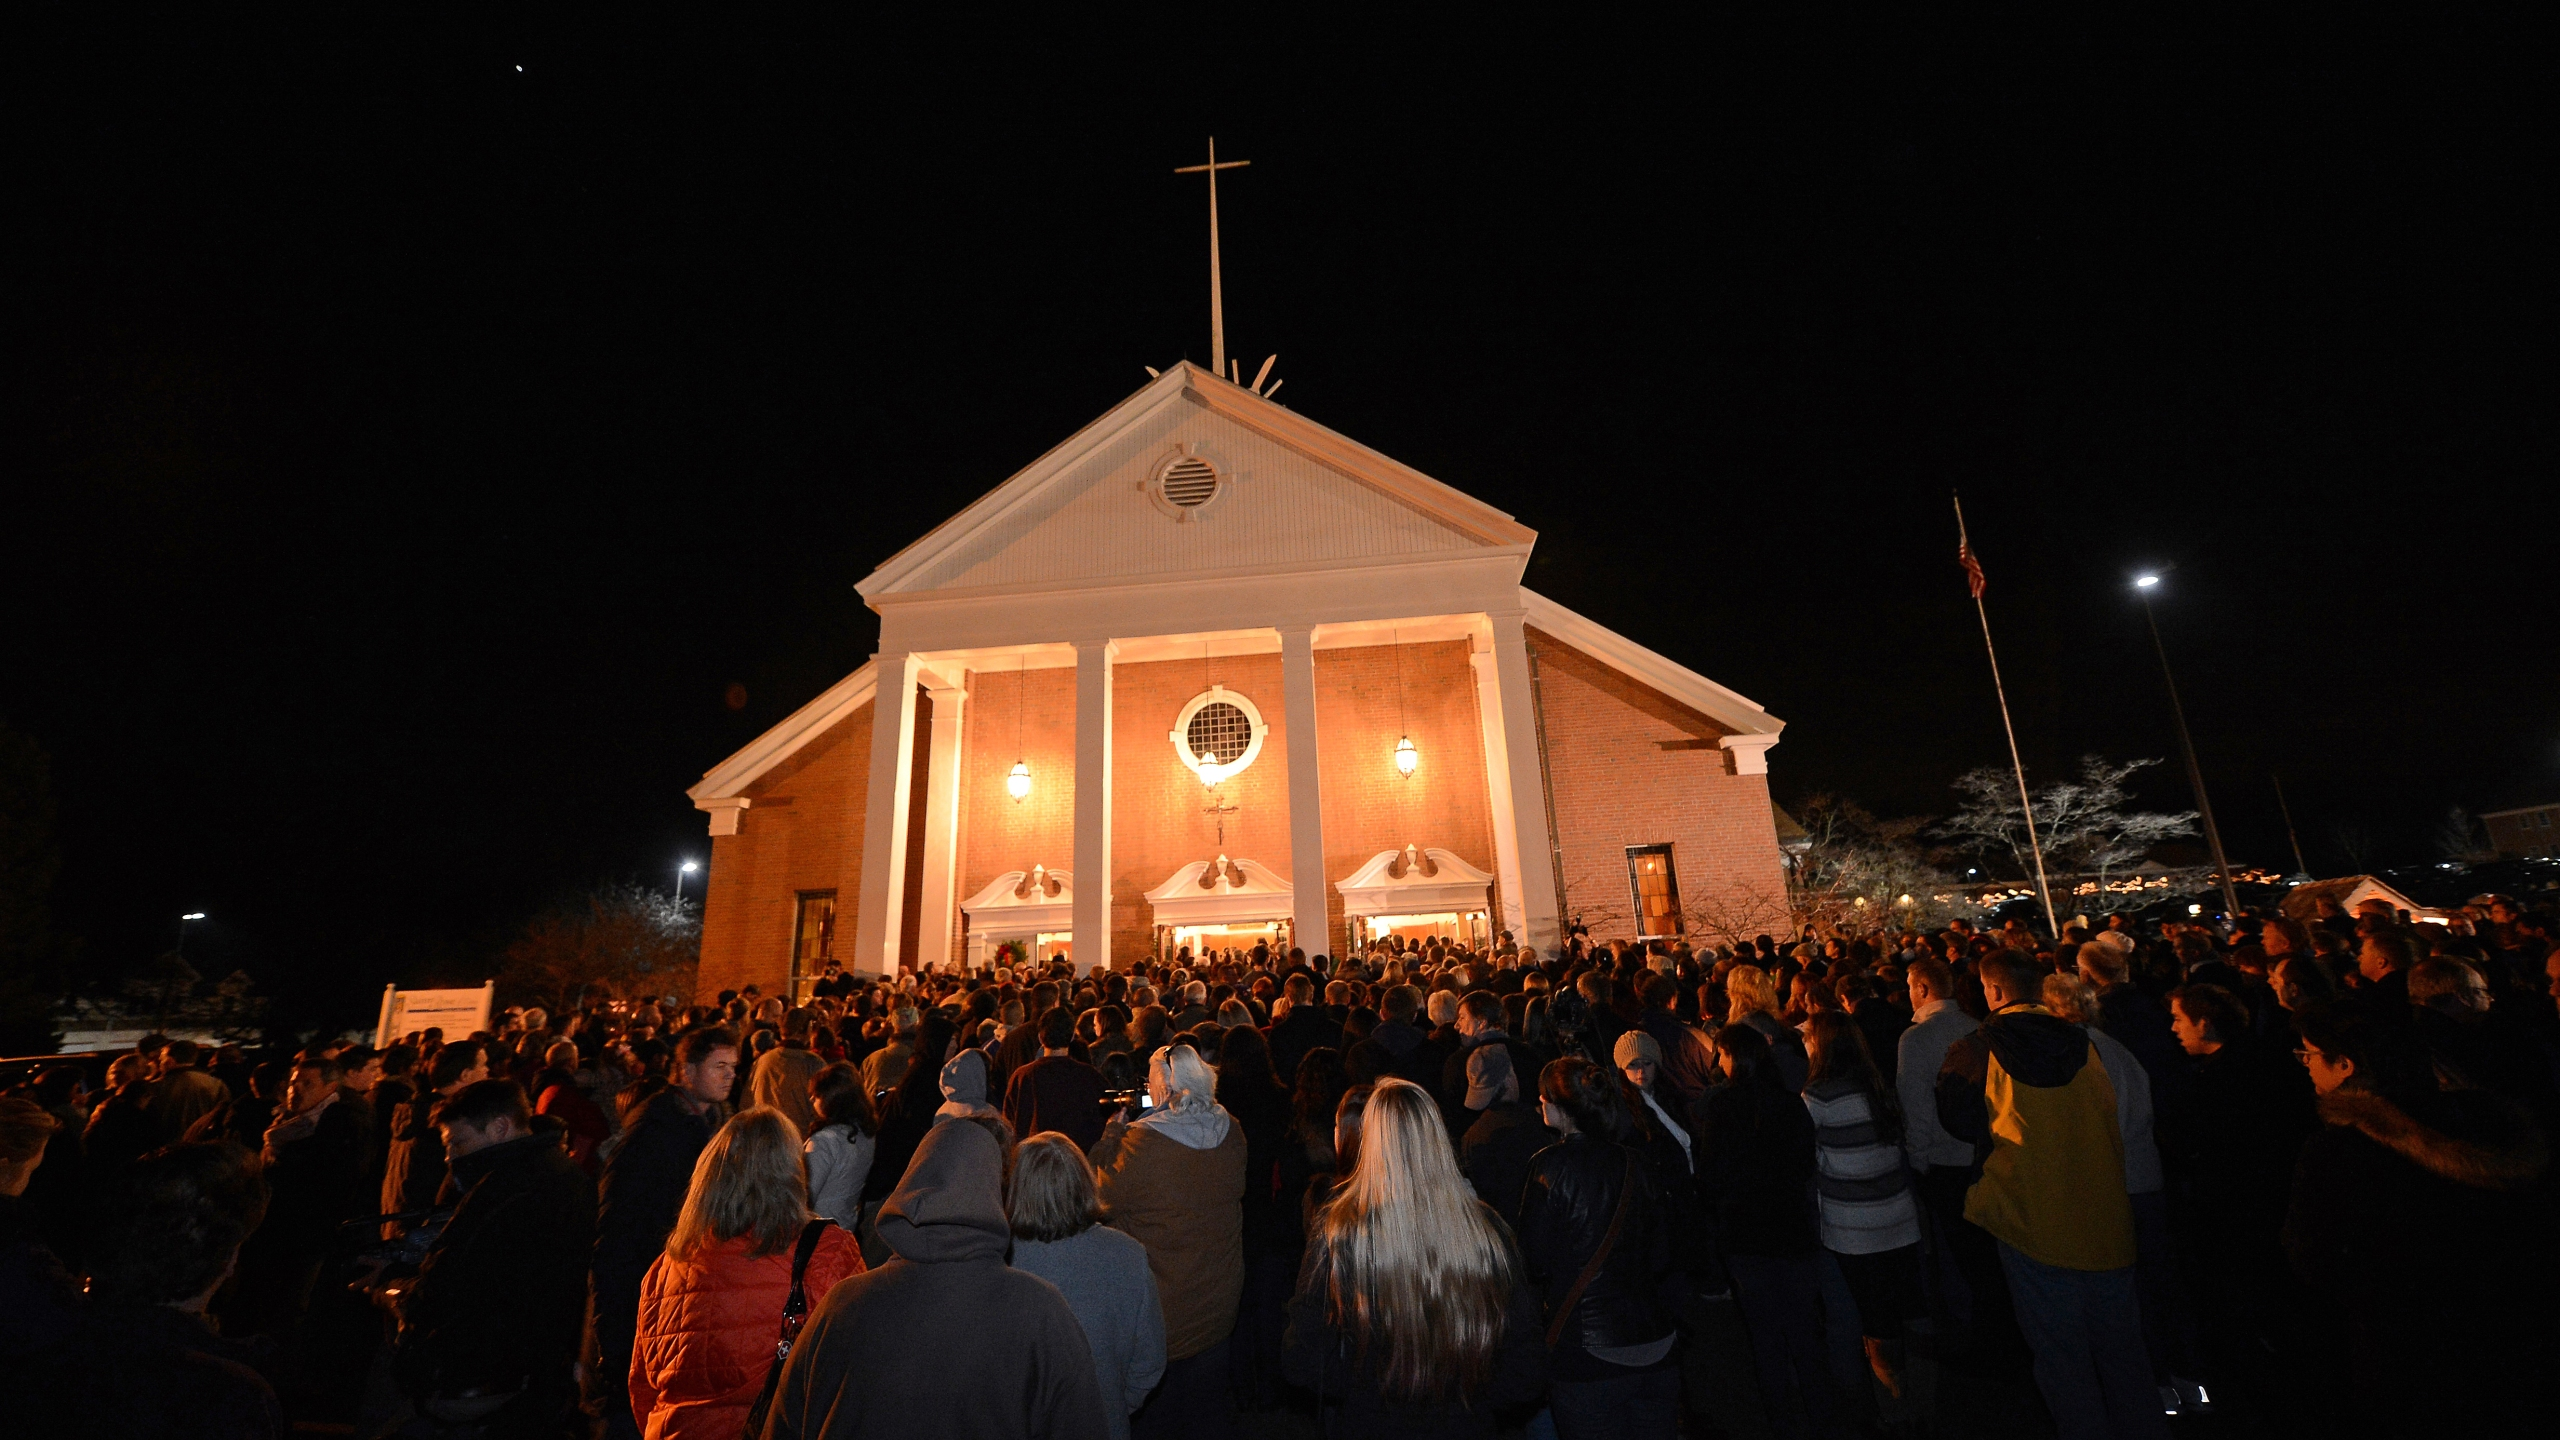 People gather for a prayer vigil at St. Rose Church following the shooting at Sandy Hook Elementary School that killed 26 people, including 20 children, in Newtown, Conn., Dec. 14, 2012. (Credit: EMMANUEL DUNAND/AFP/Getty Images)